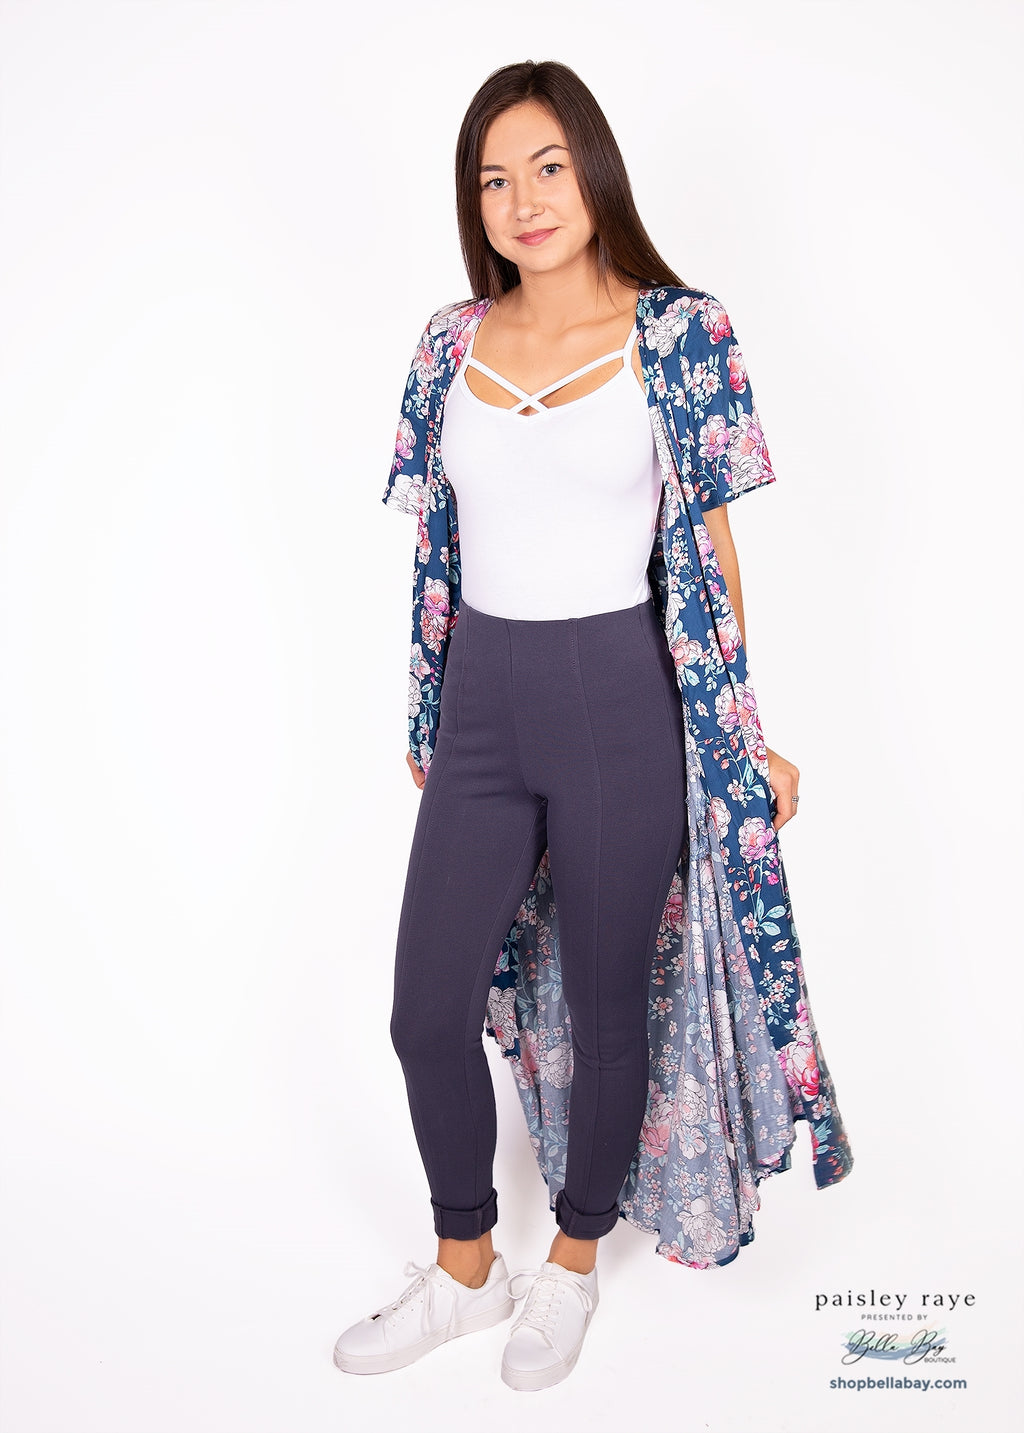 Paisley Raye Pixie Pant- Blue Grey (1X) - Paisley Raye with Bella Bay Boutique, shop now at  https://shopbellabay.com/ or locally in Newport Oregon